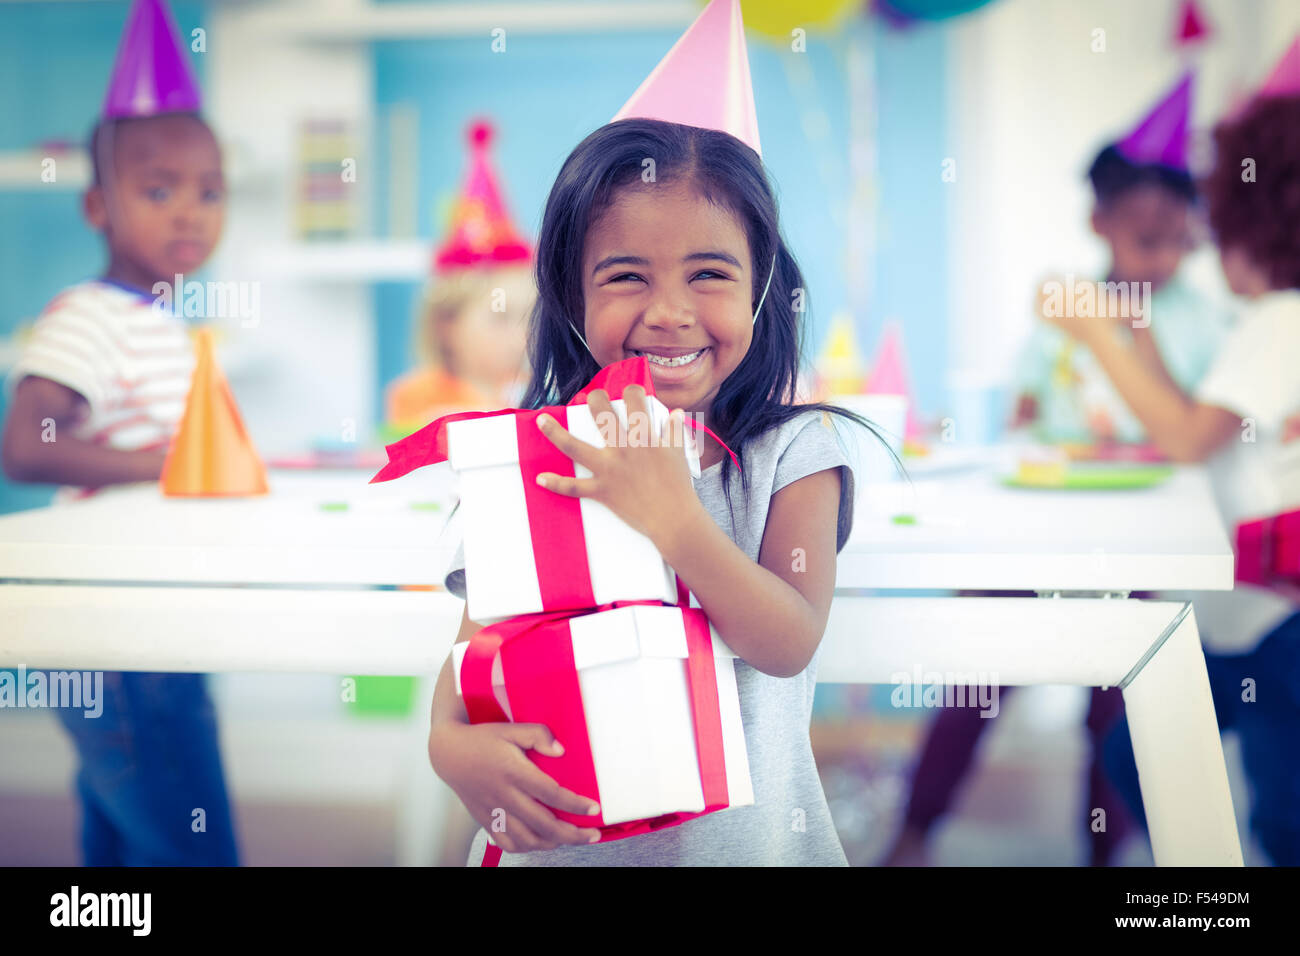 Smiling girl at Birthday party Photo Stock